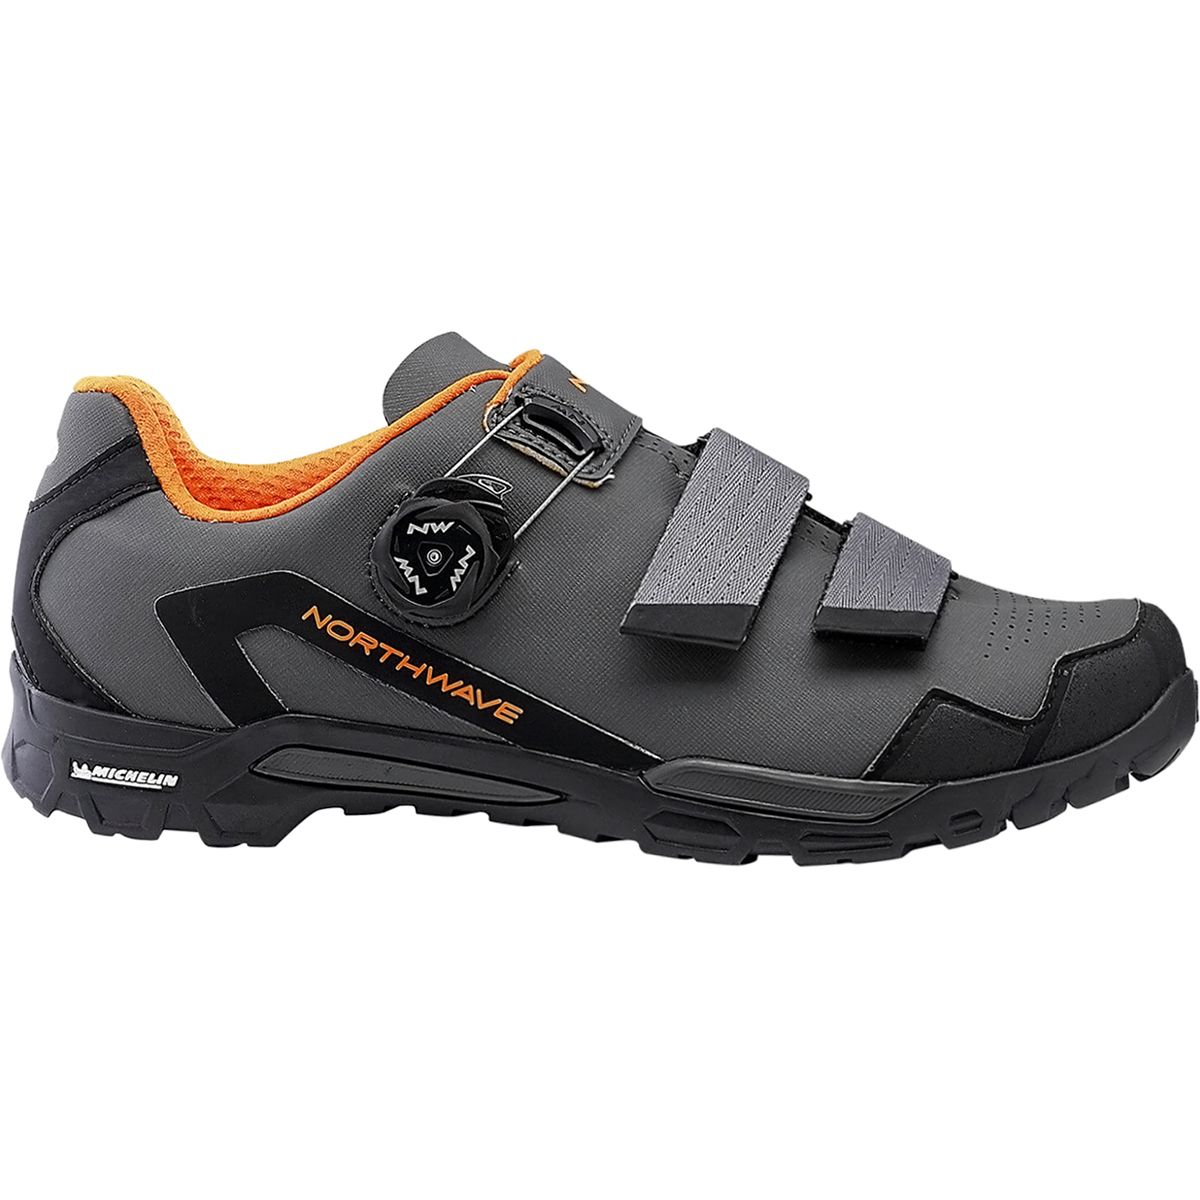 Northwave Outcross 2 Plus Cycling Shoe - Men's